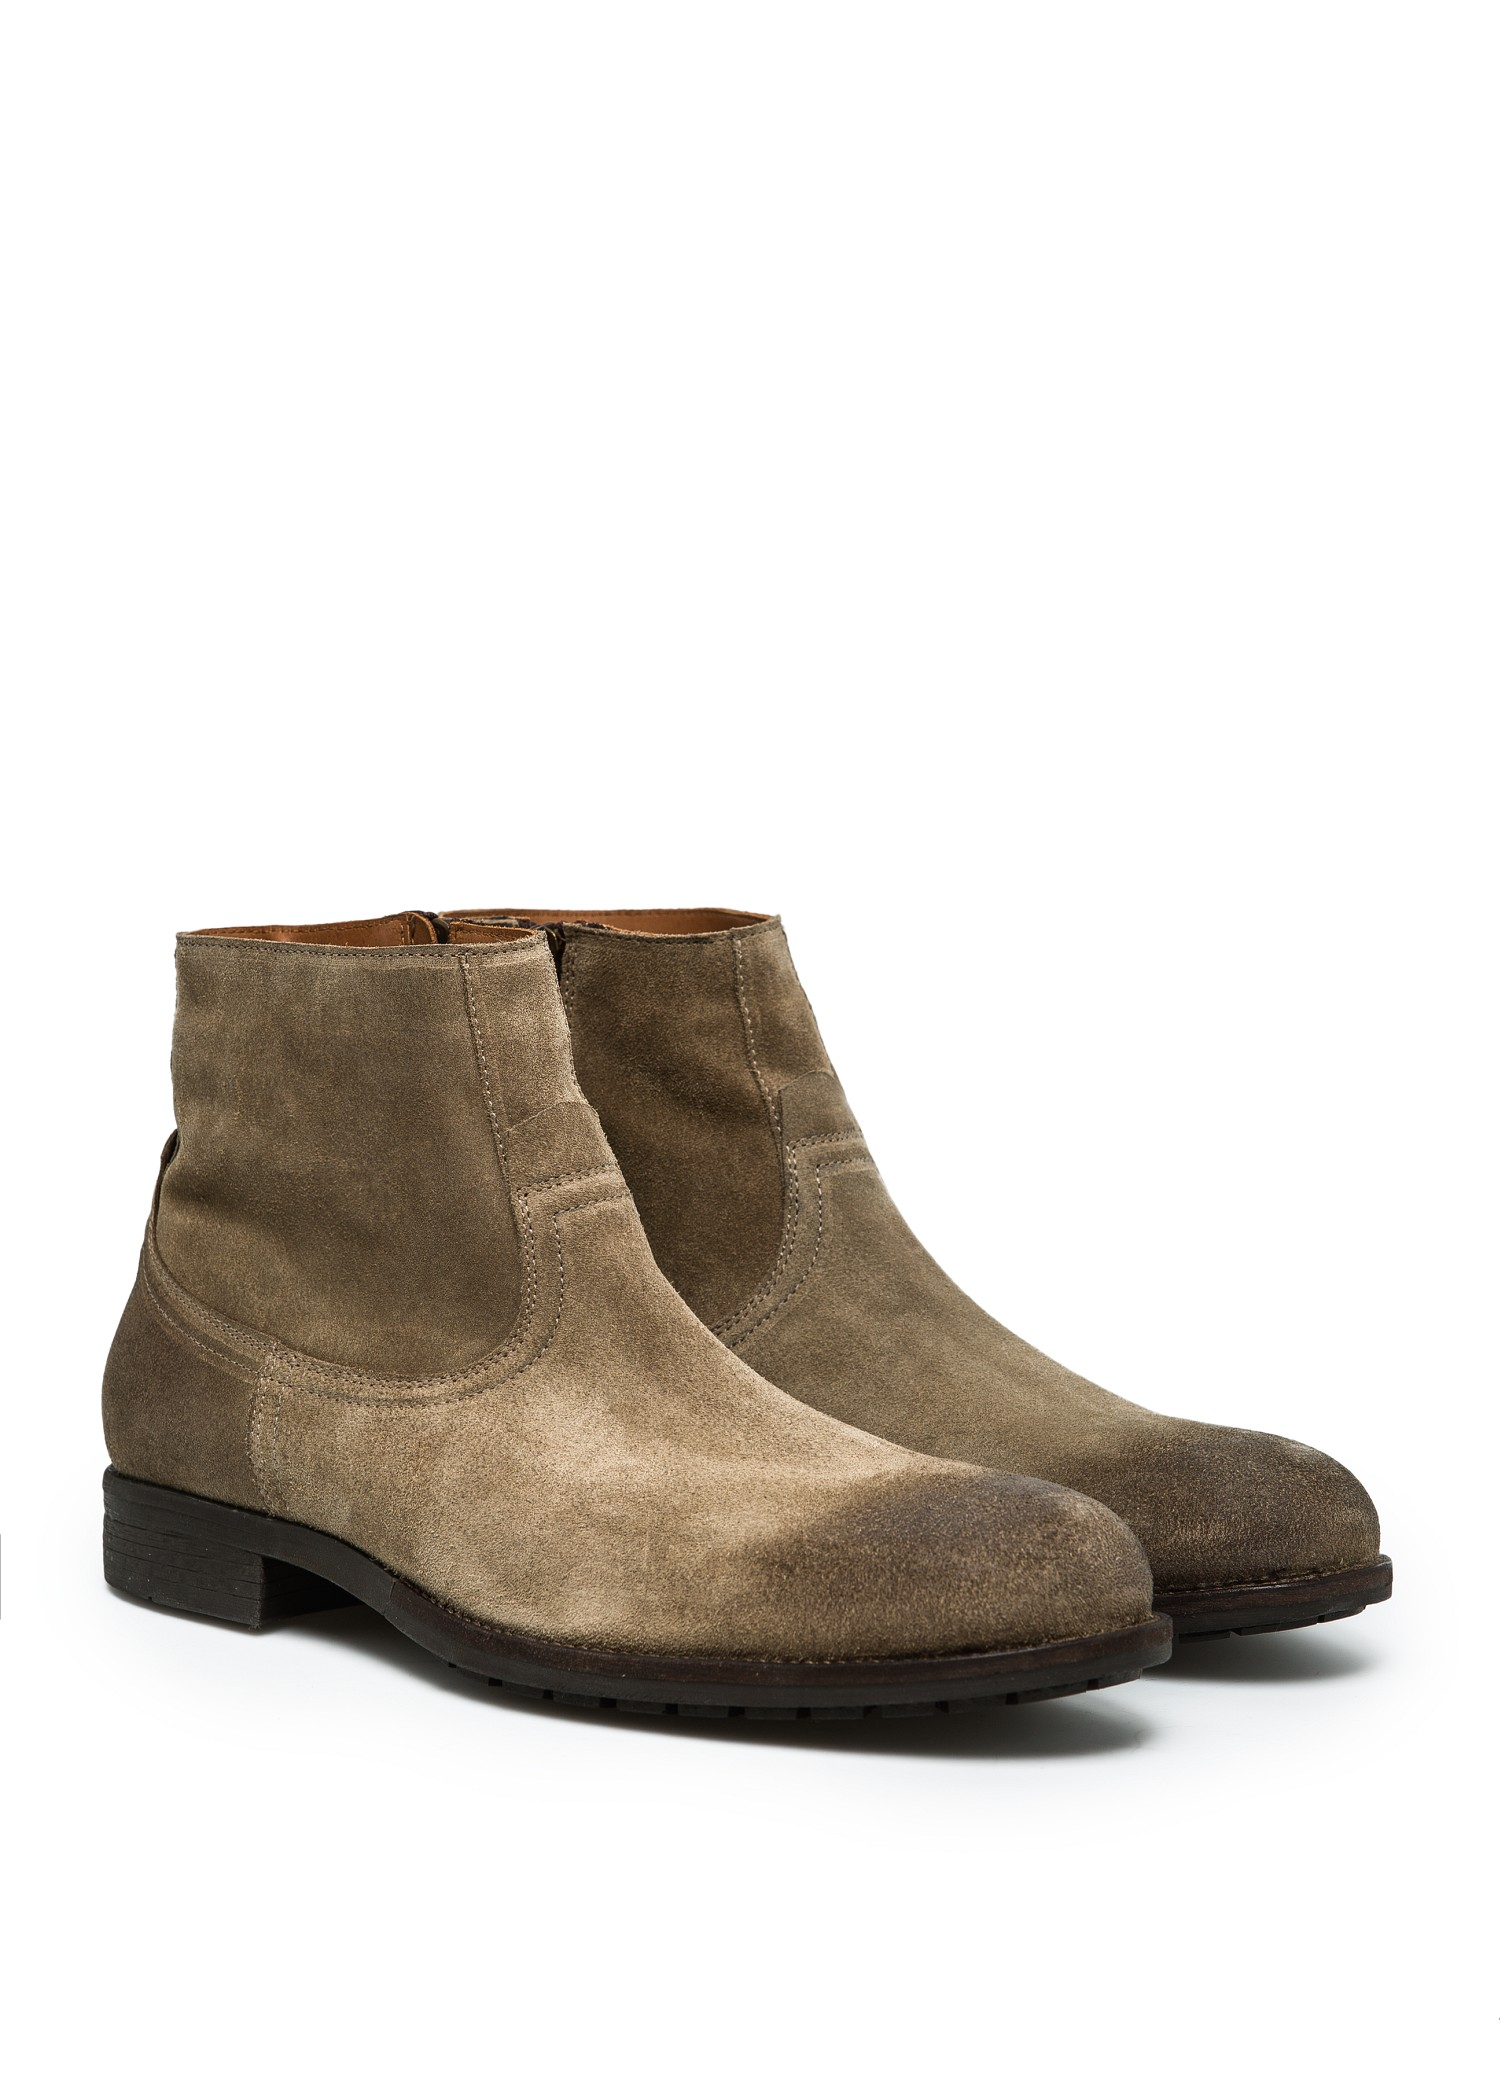 mango zipped suede ankle boots in brown for leather